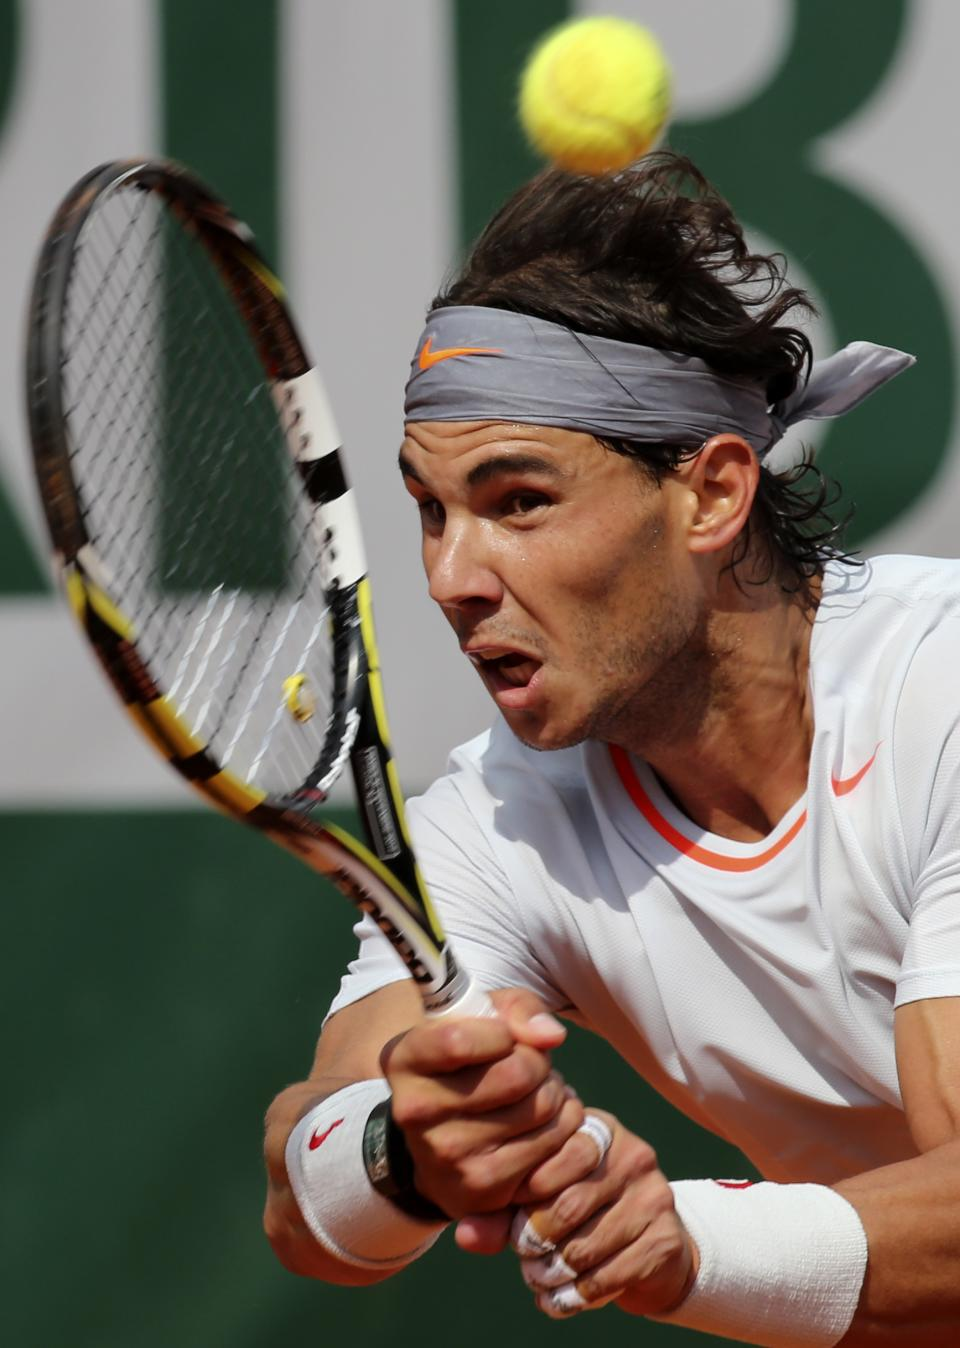 Spain's Rafael Nadal returns the ball to Japan's Kei Nishikori during their fourth round match of the French Open tennis tournament at the Roland Garros stadium Monday, June 3, 2013 in Paris. (AP Photo/Michel Euler)